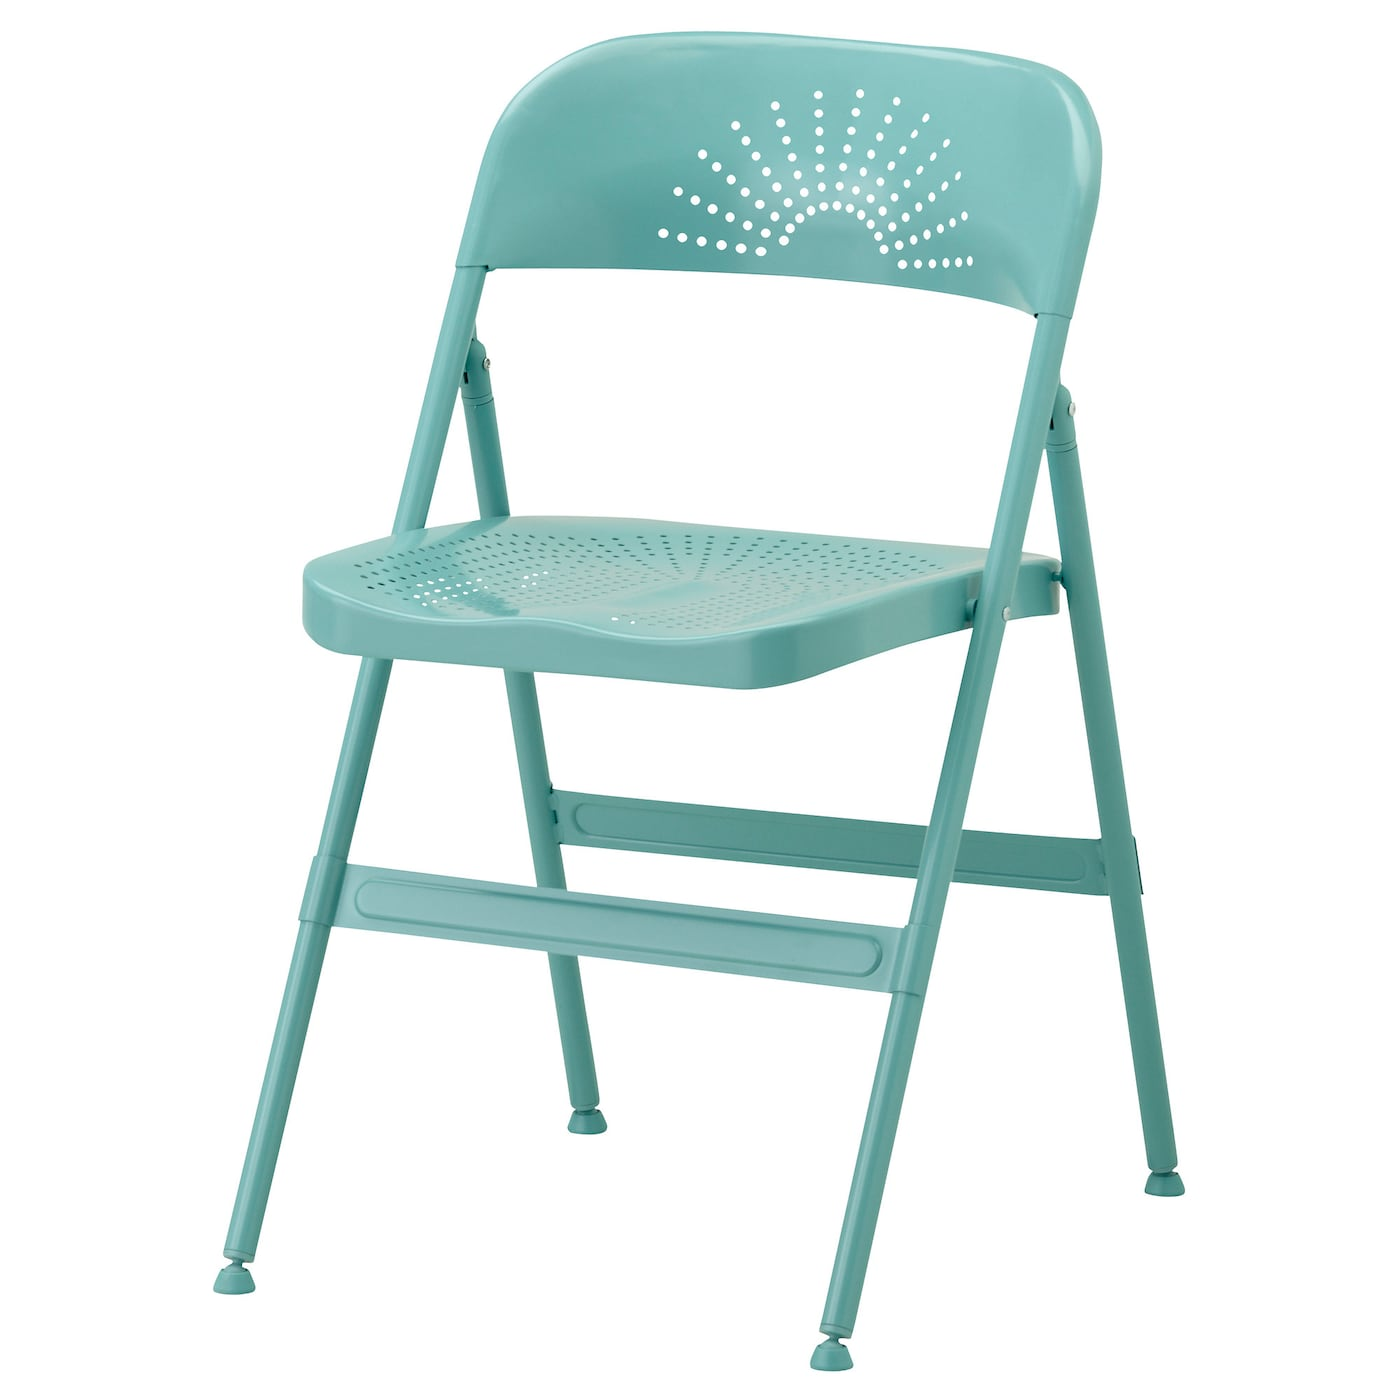 Frode chaise pliante turquoise ikea for Chaise pliante ikea